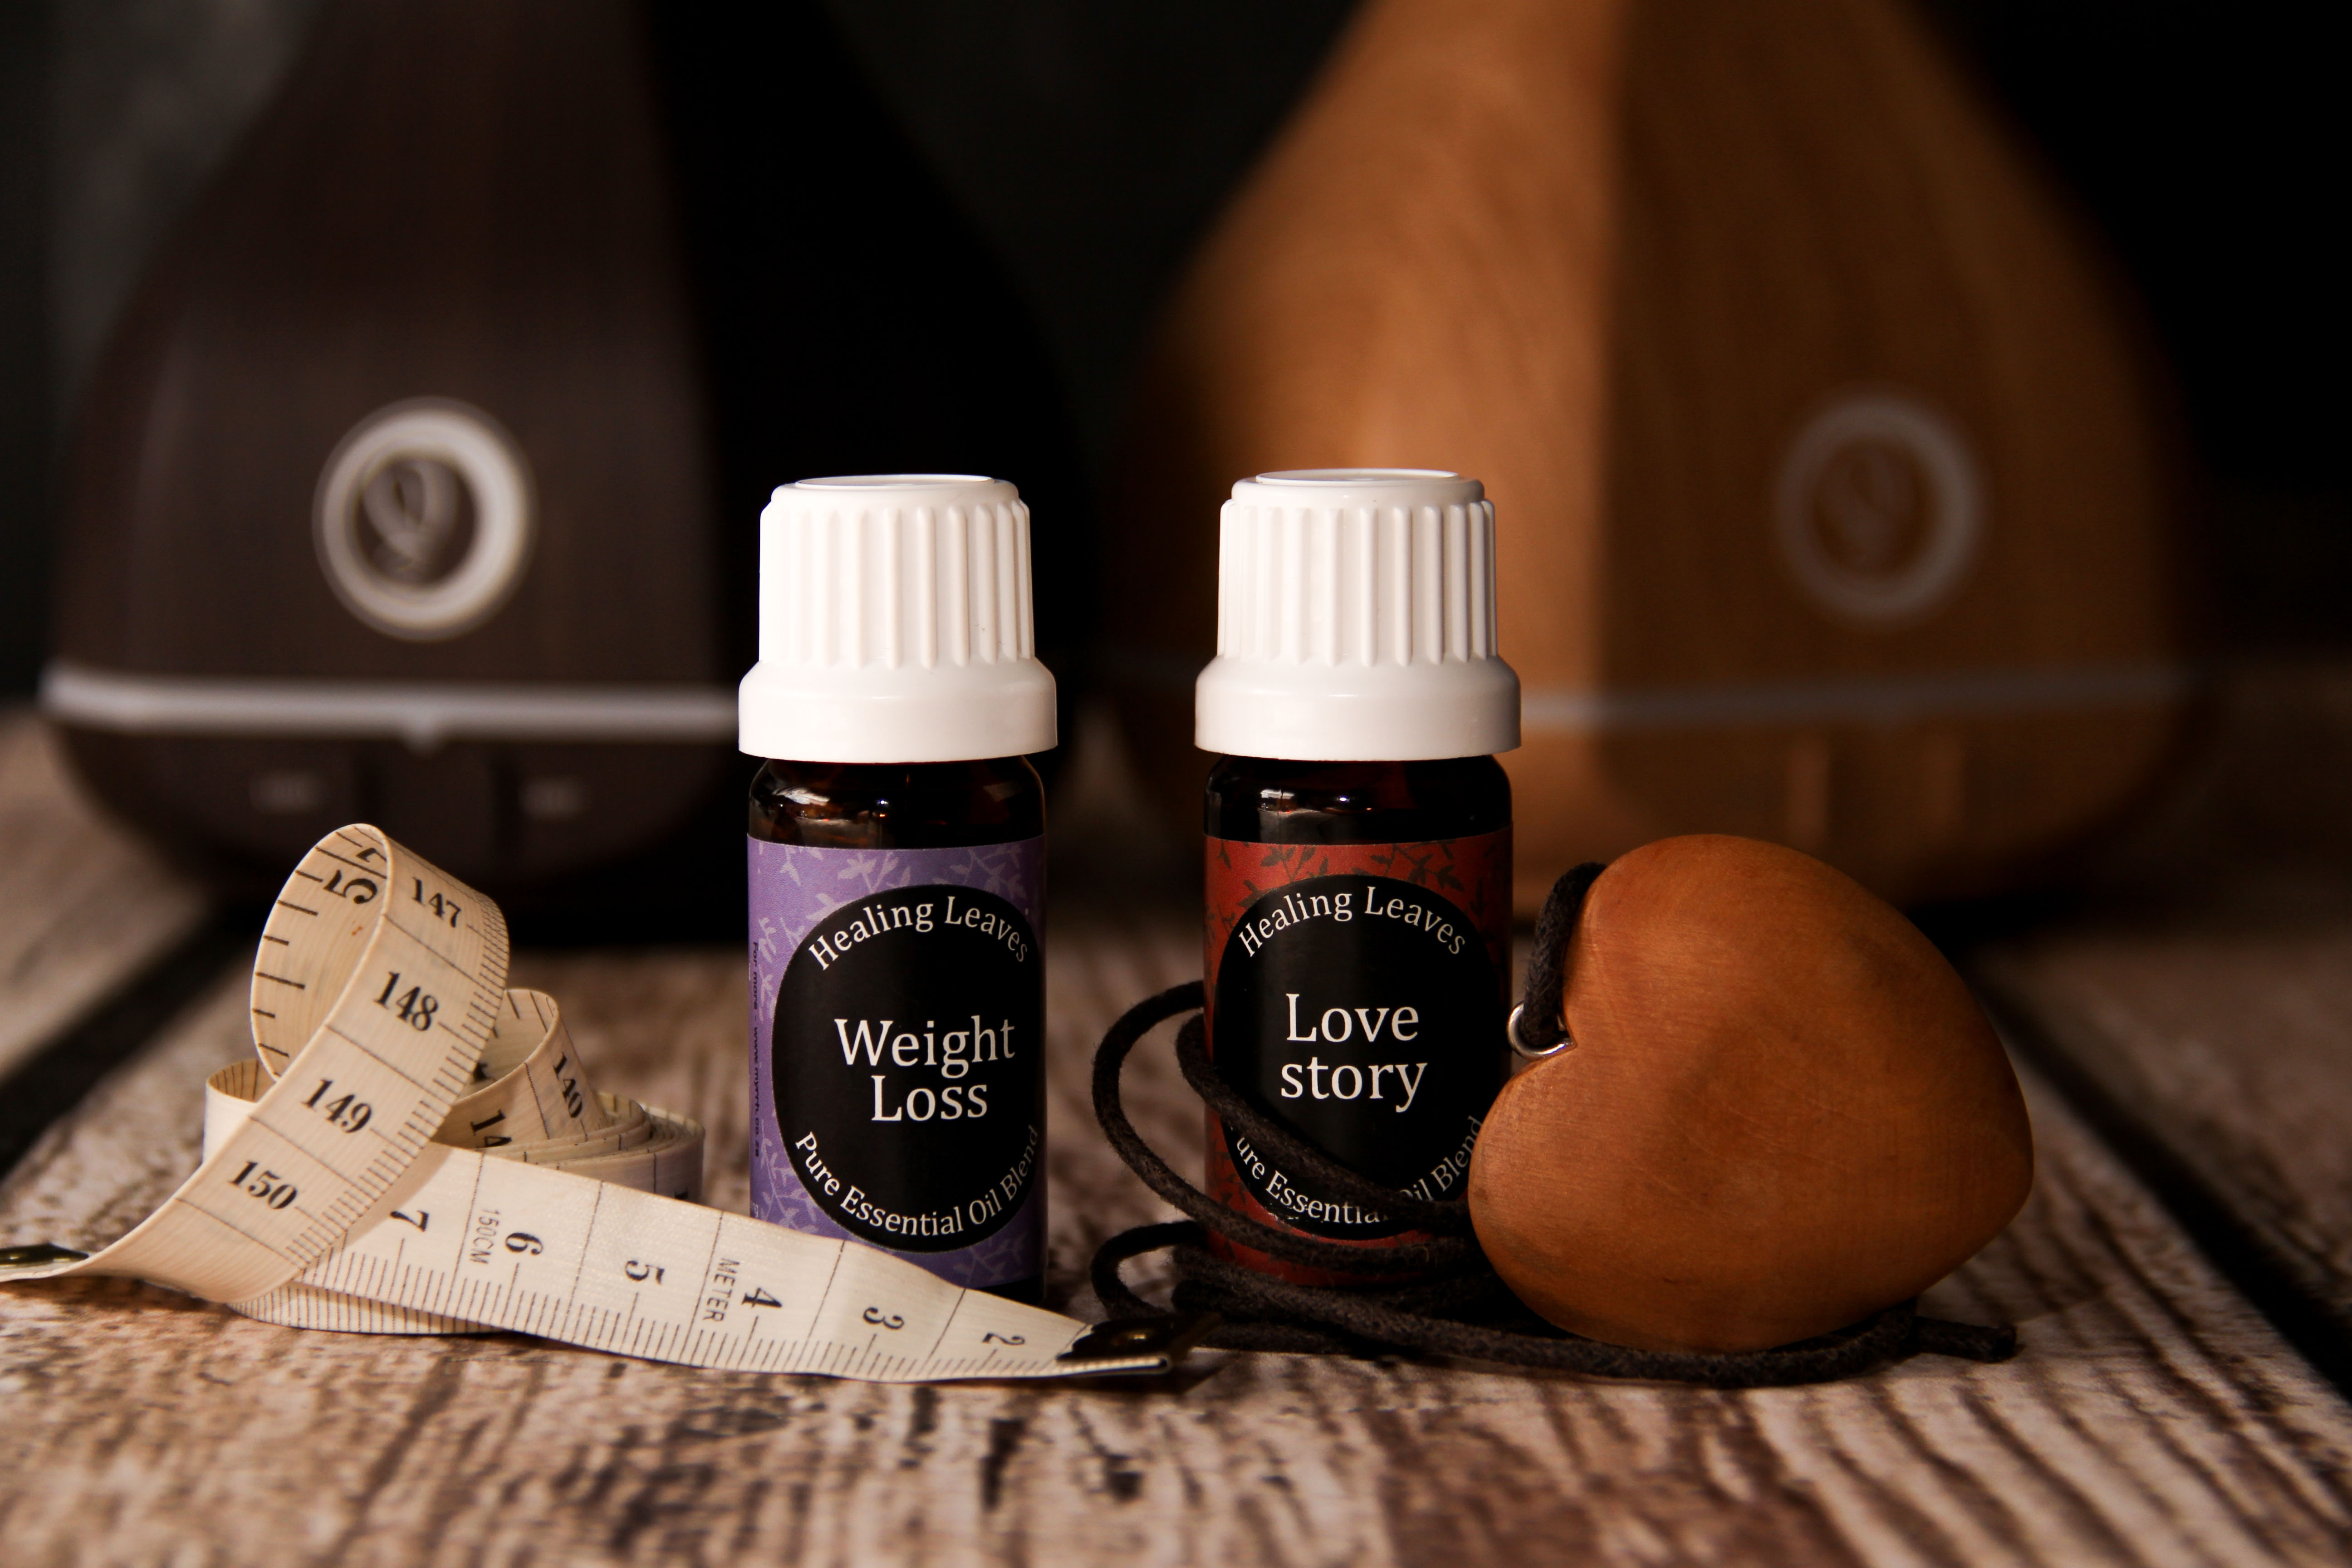 weight-loss-&amp-love-story-ess-oil-diffuser